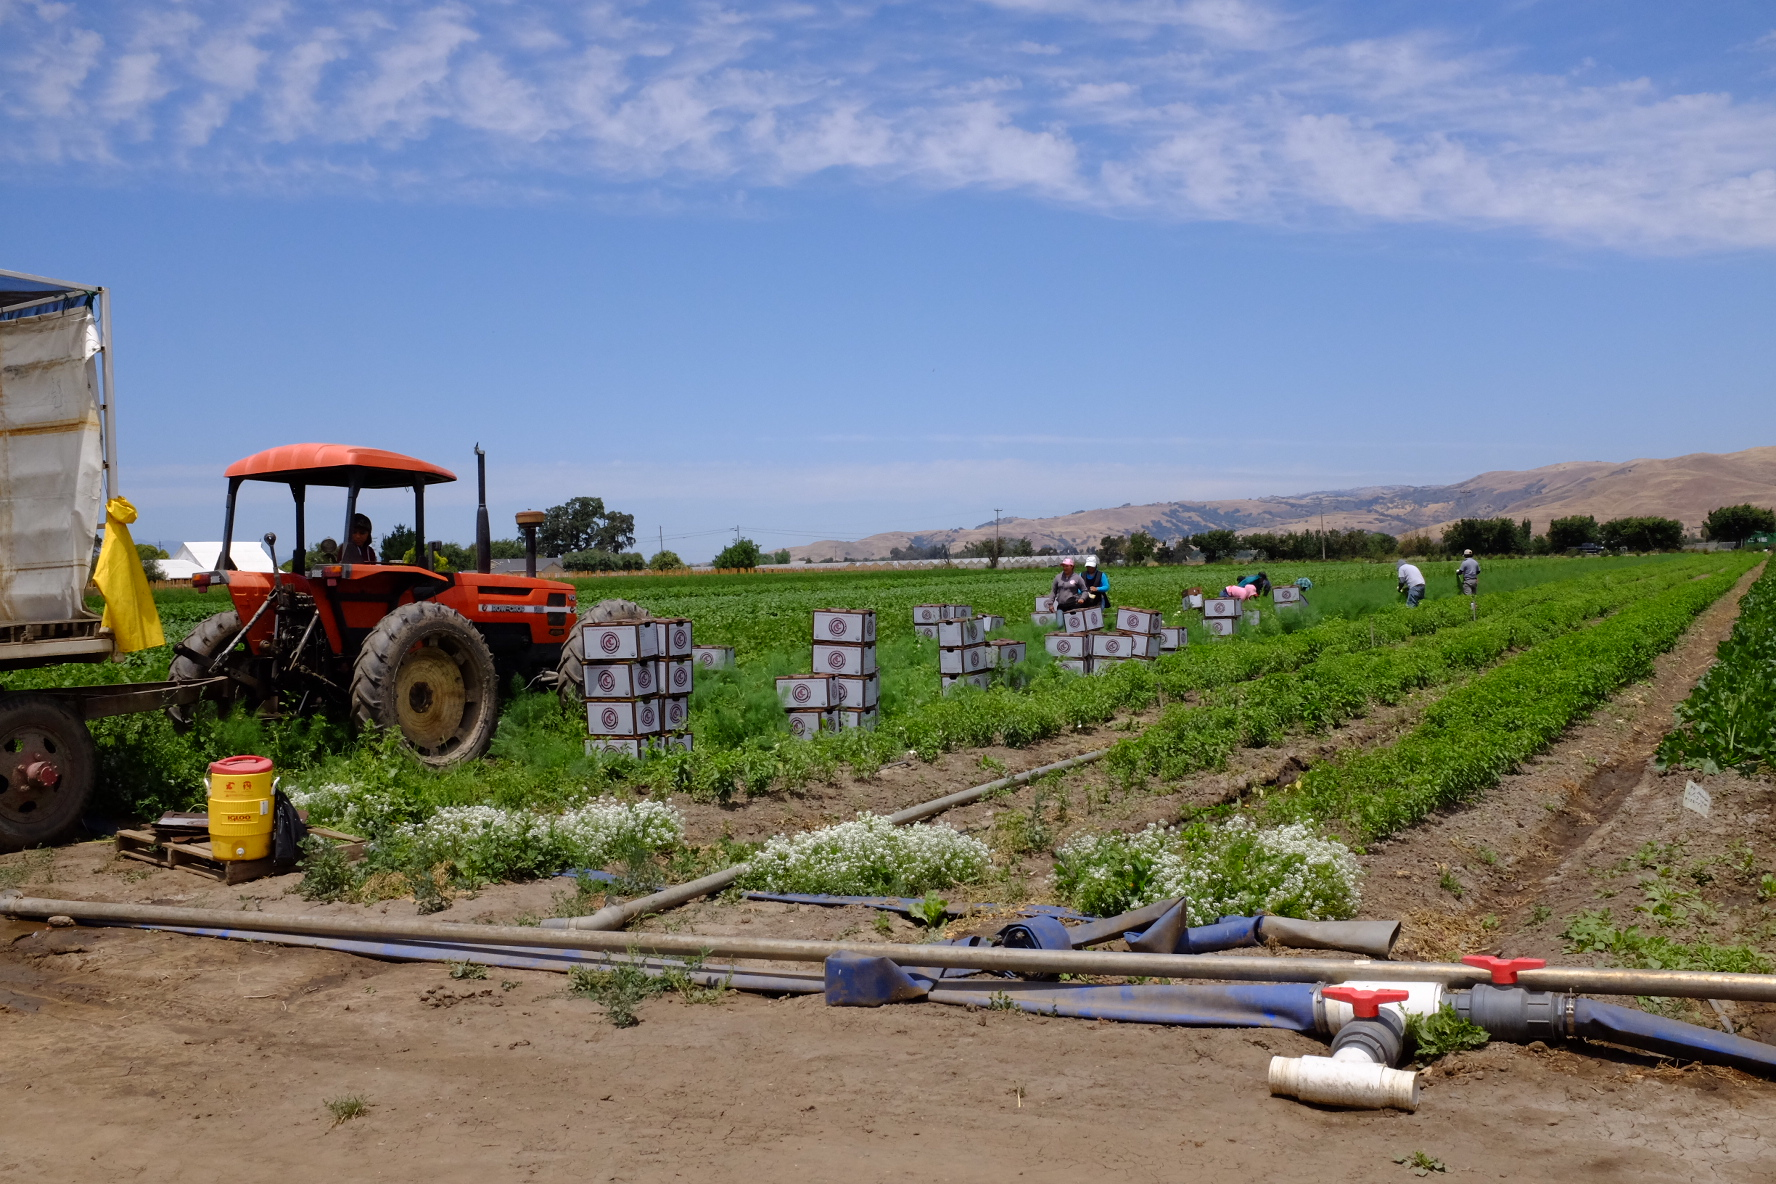 06.16.16 Las Hermanas Boxes and Tractor in Field